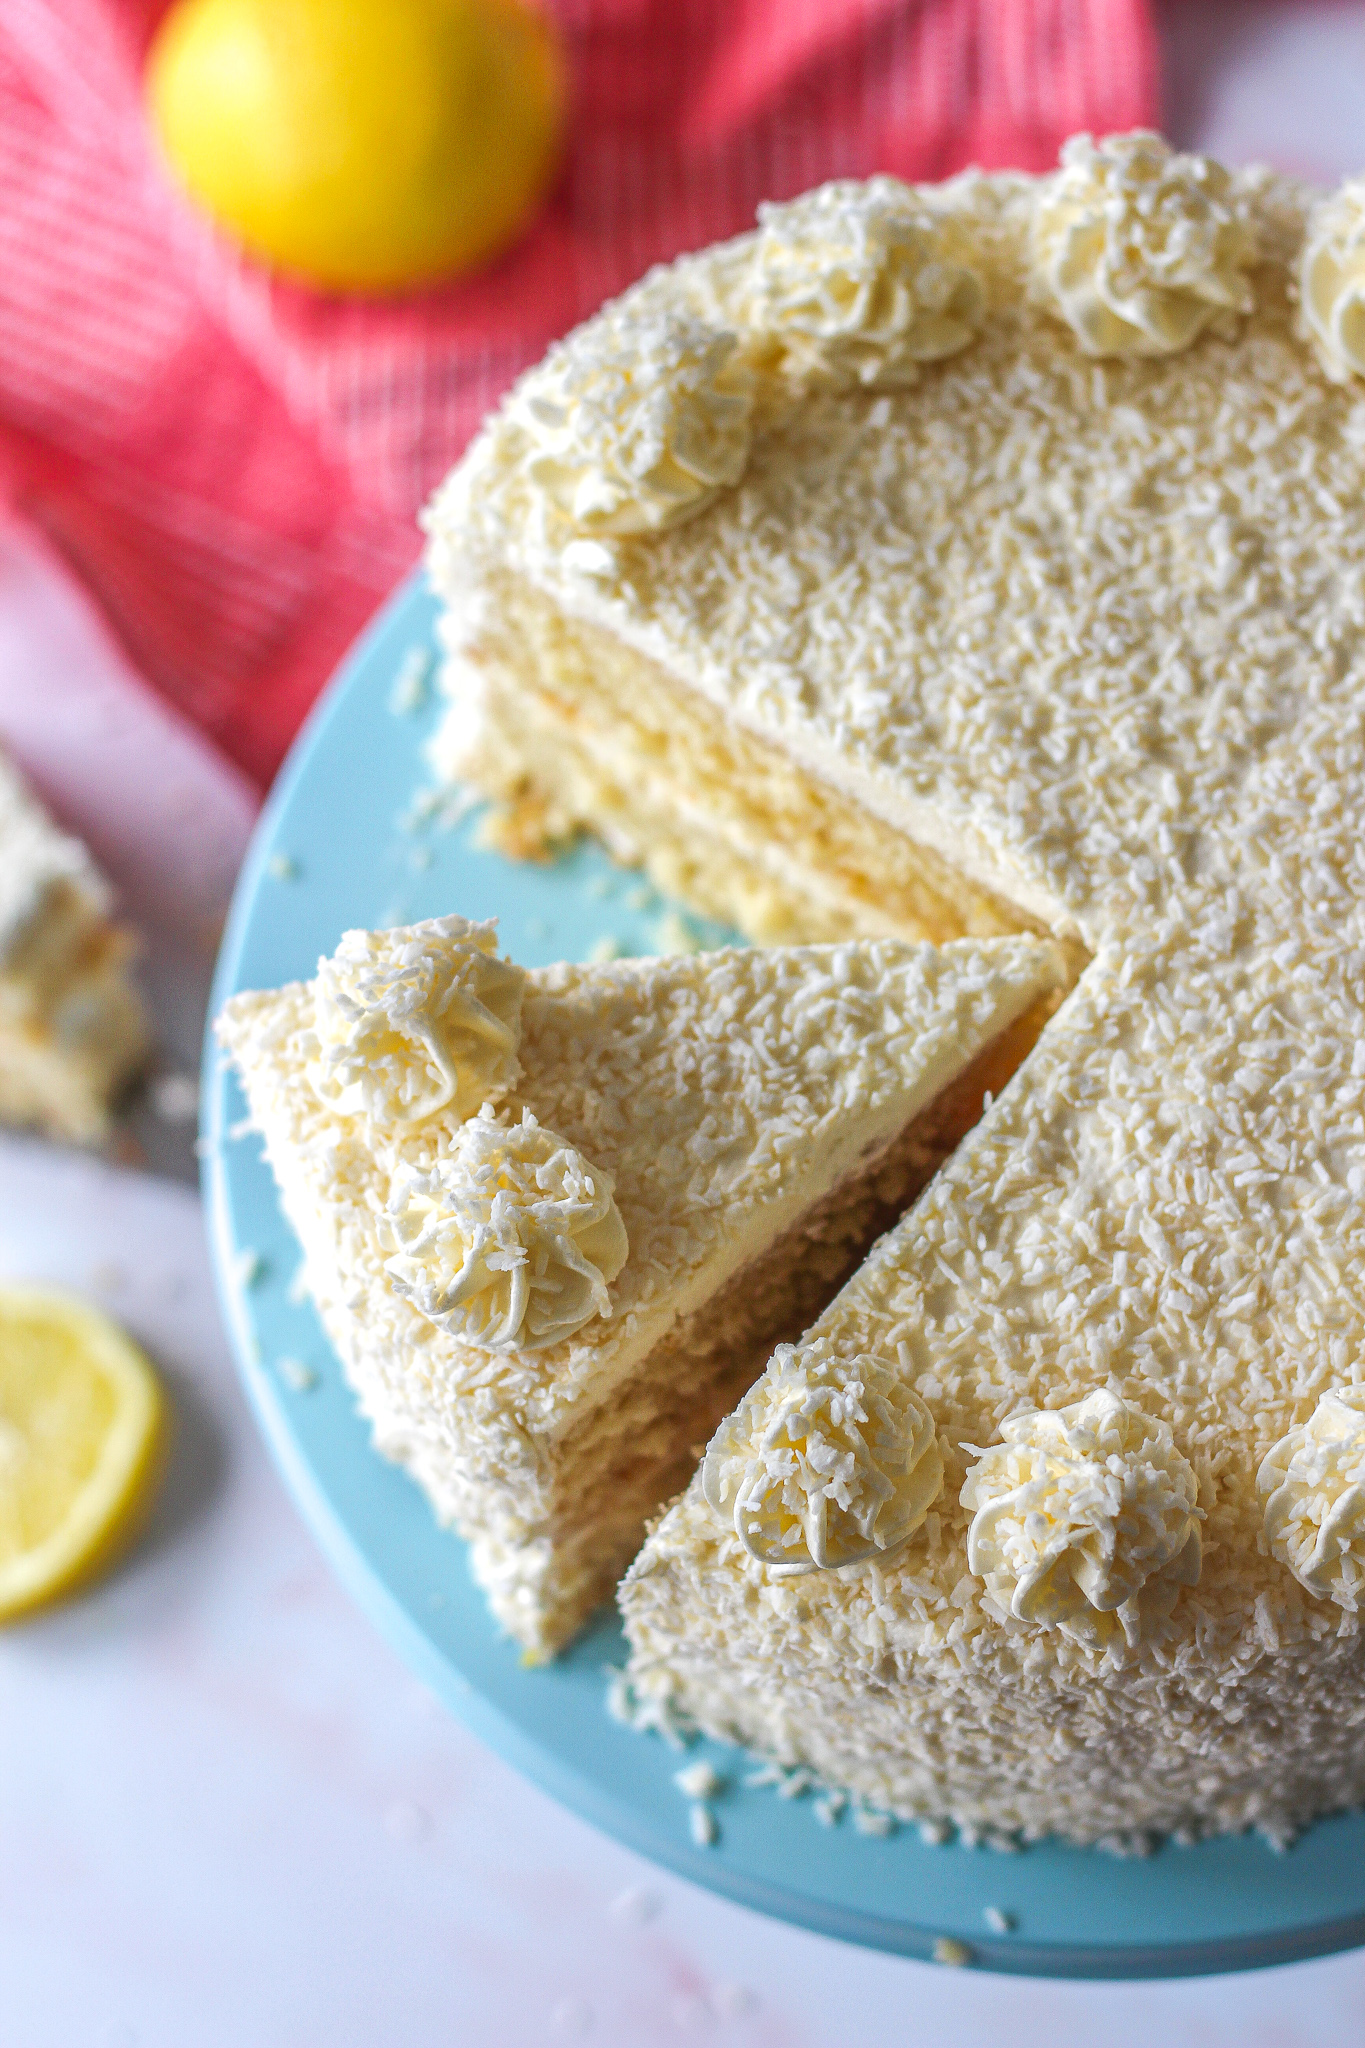 view from above of lemon coconut layer cake slice adjacent to rest of cake